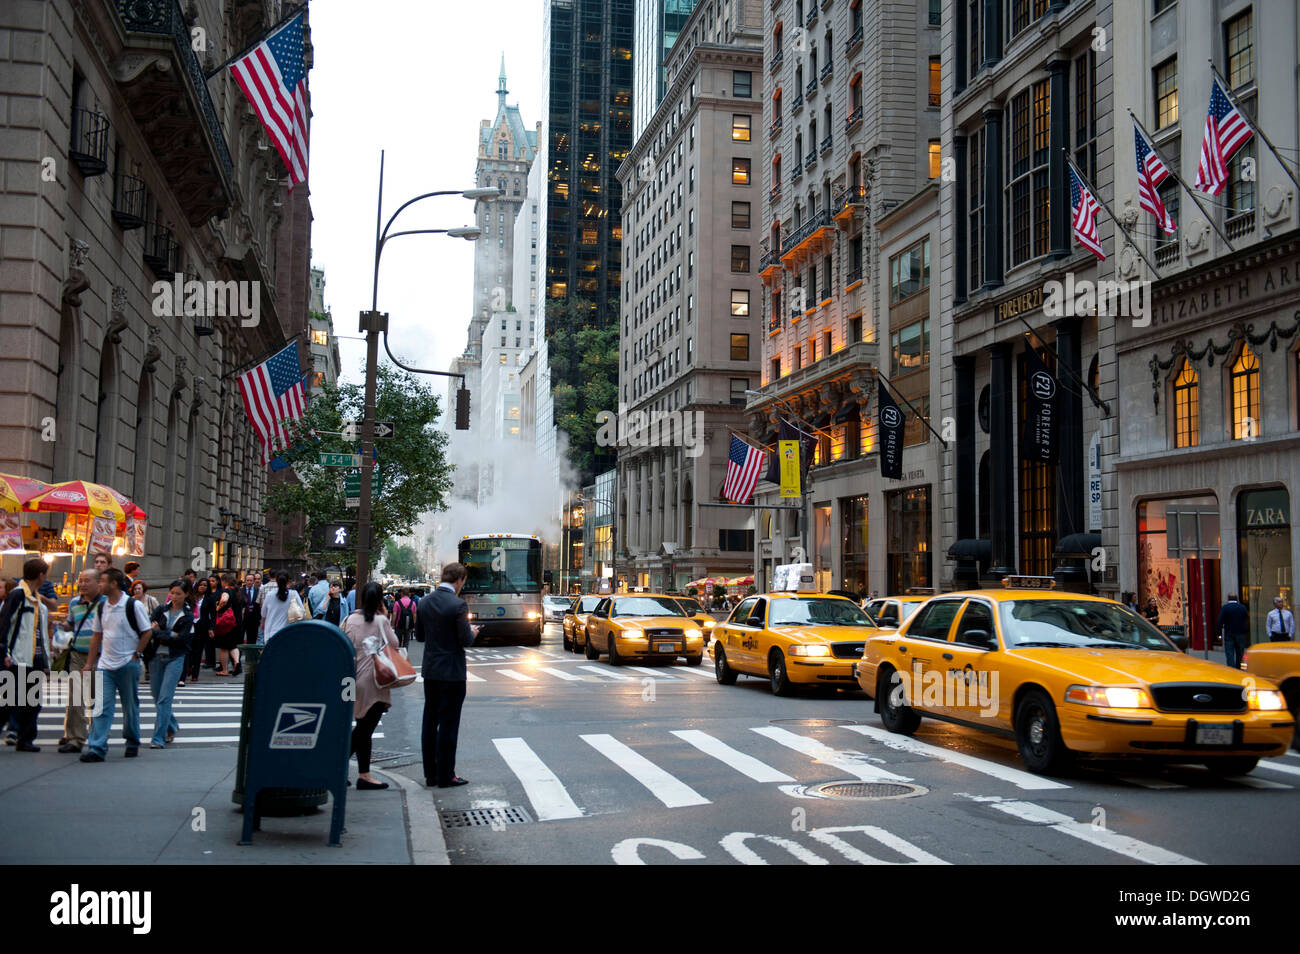 Traffic at dusk, yellow cabs, taxis, 5th Avenue, Midtown, Manhattan New York City, USA, North America, America - Stock Image